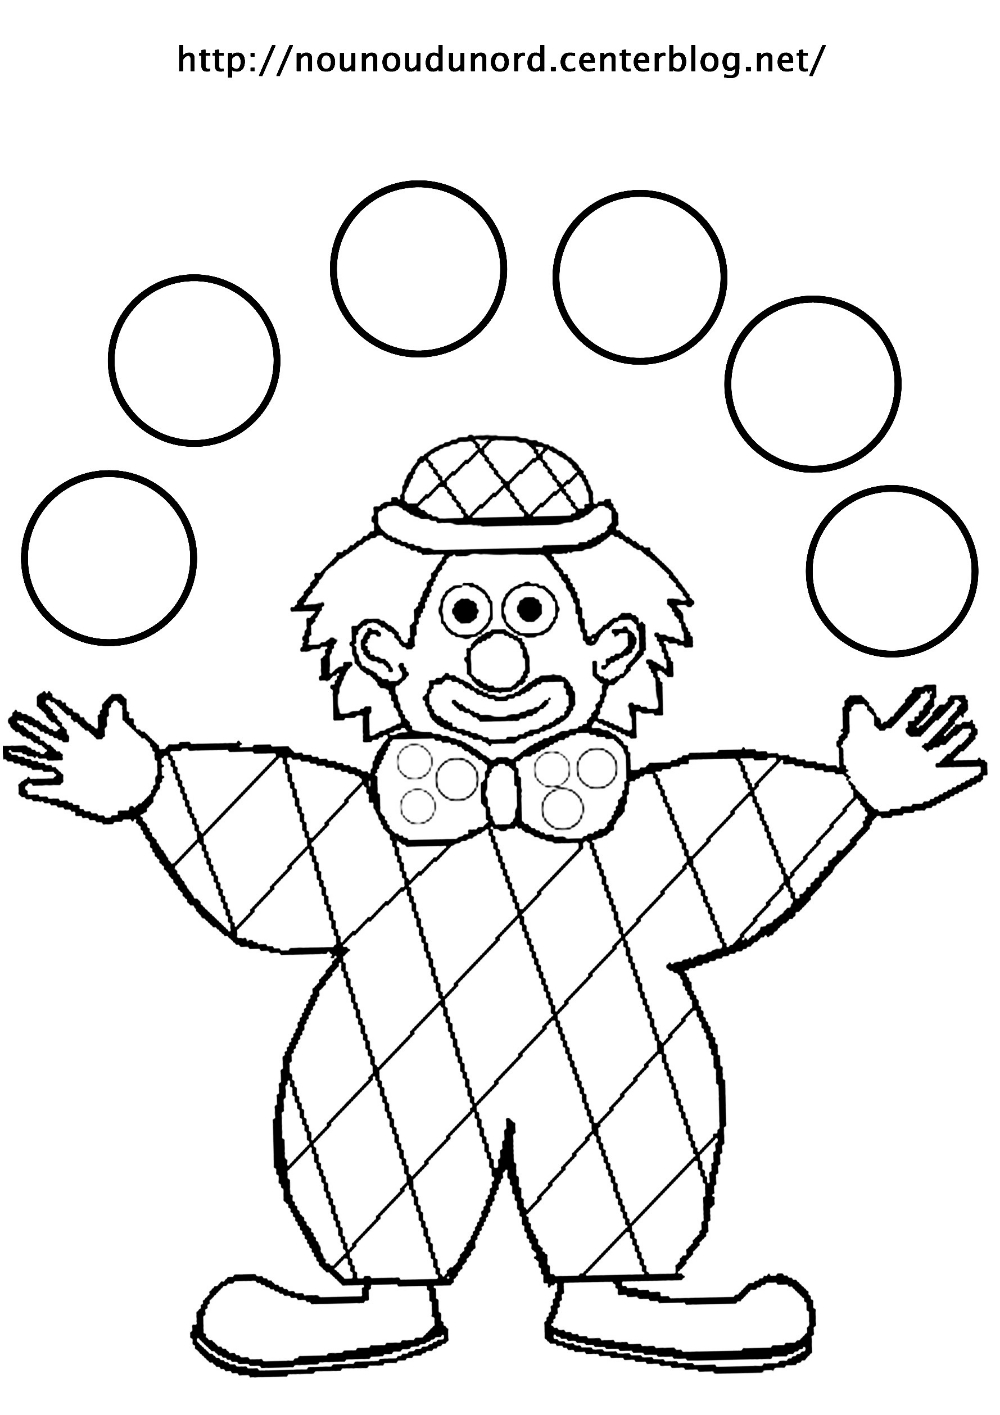 Clown #16 (Personnages) – Coloriages À Imprimer À Coloriage destiné Arlequin A Colorier